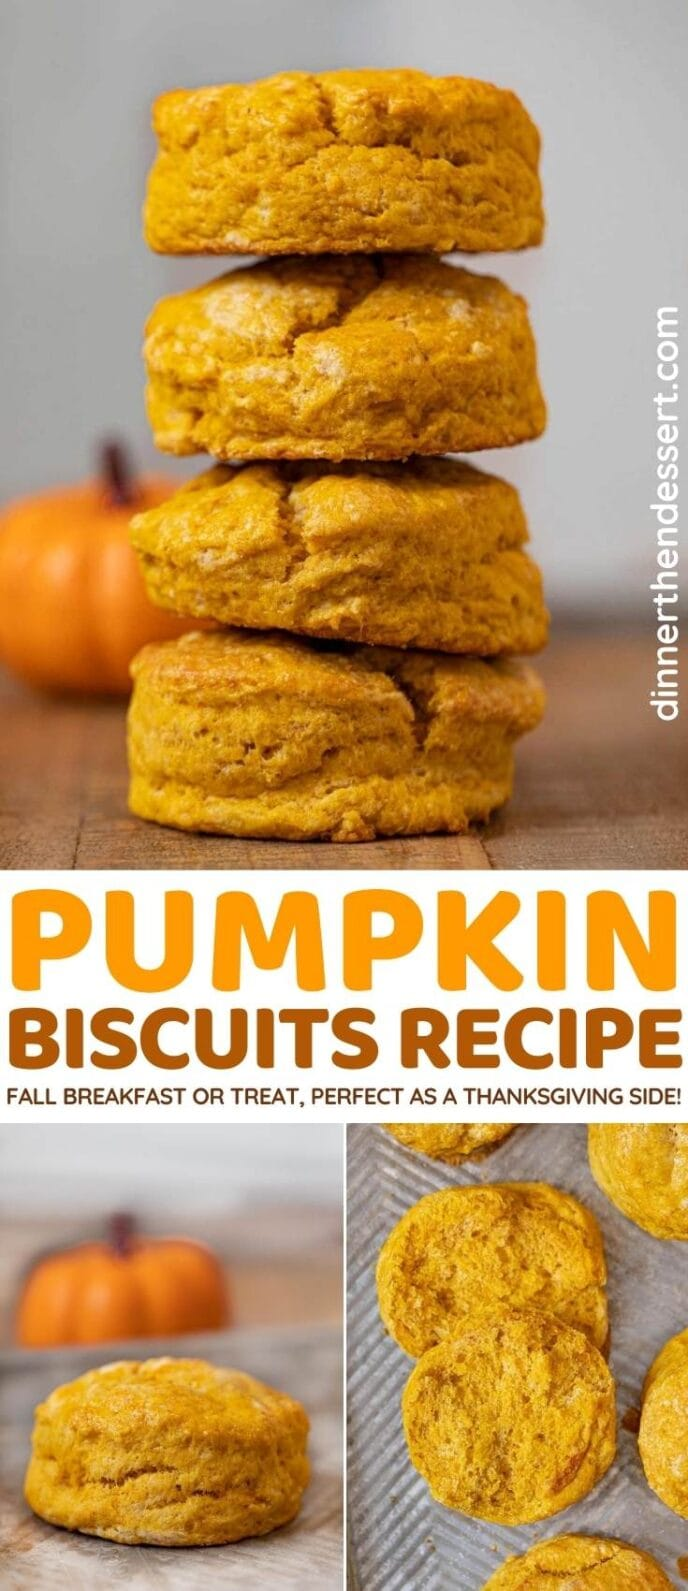 Pumpkin Biscuits collage